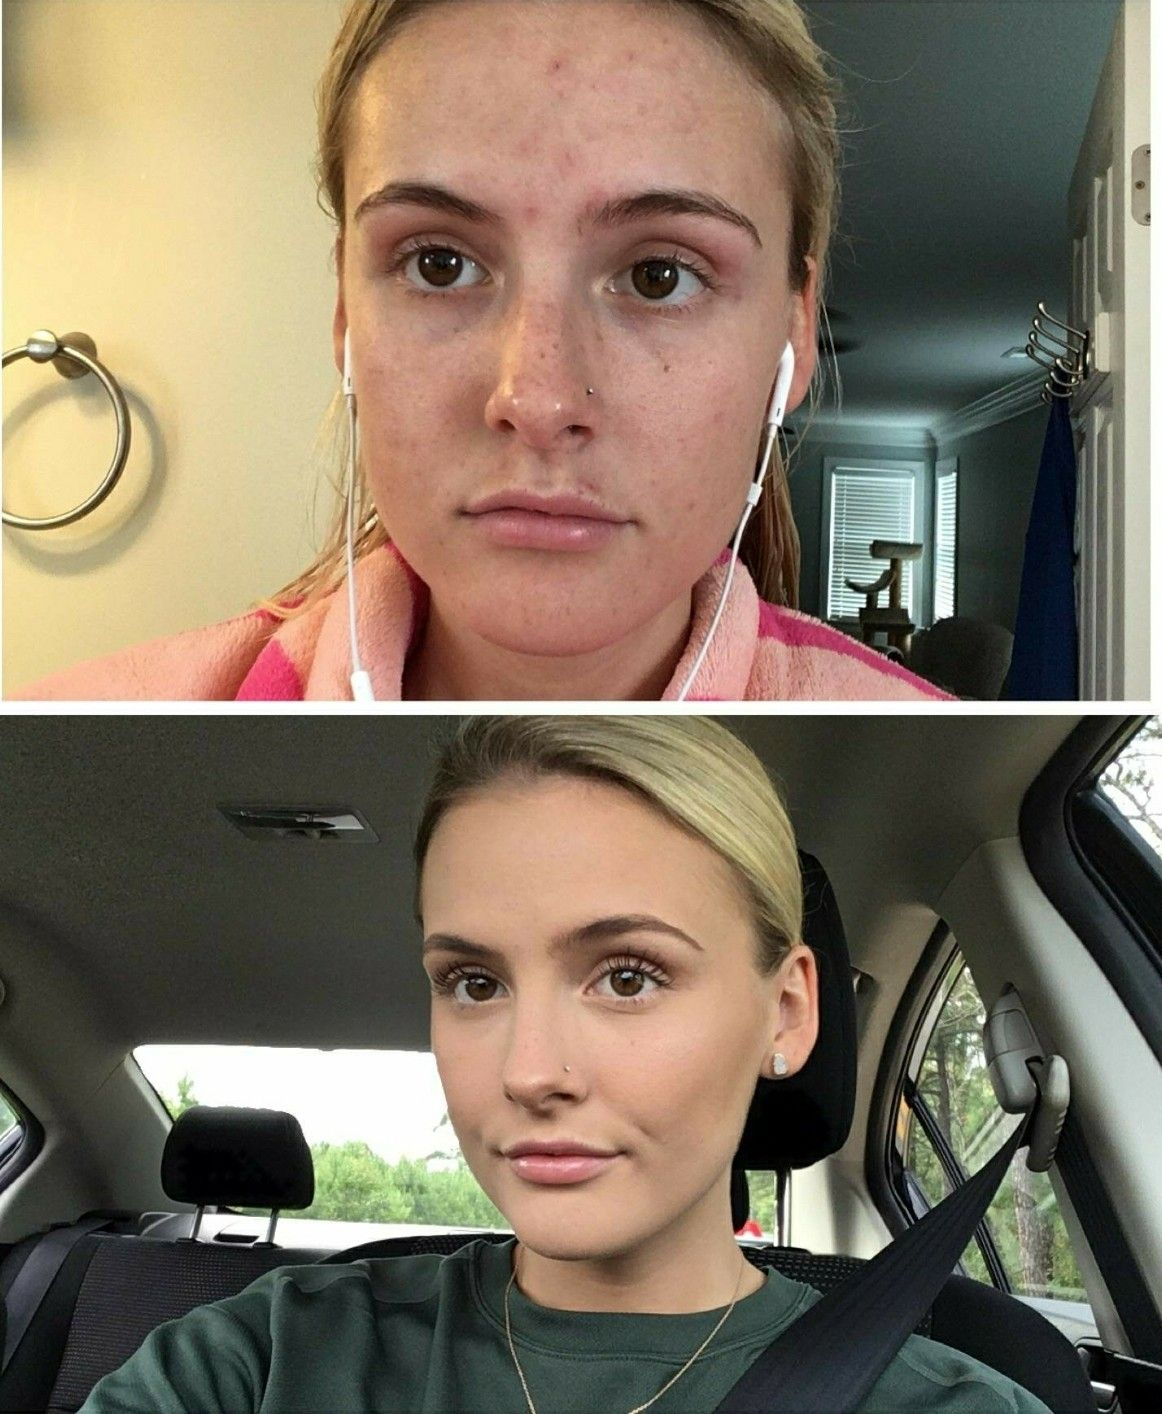 Beauty Blender Or Brush For Full Coverage: Full Acne Coverage: Products I Used! •Benefit The